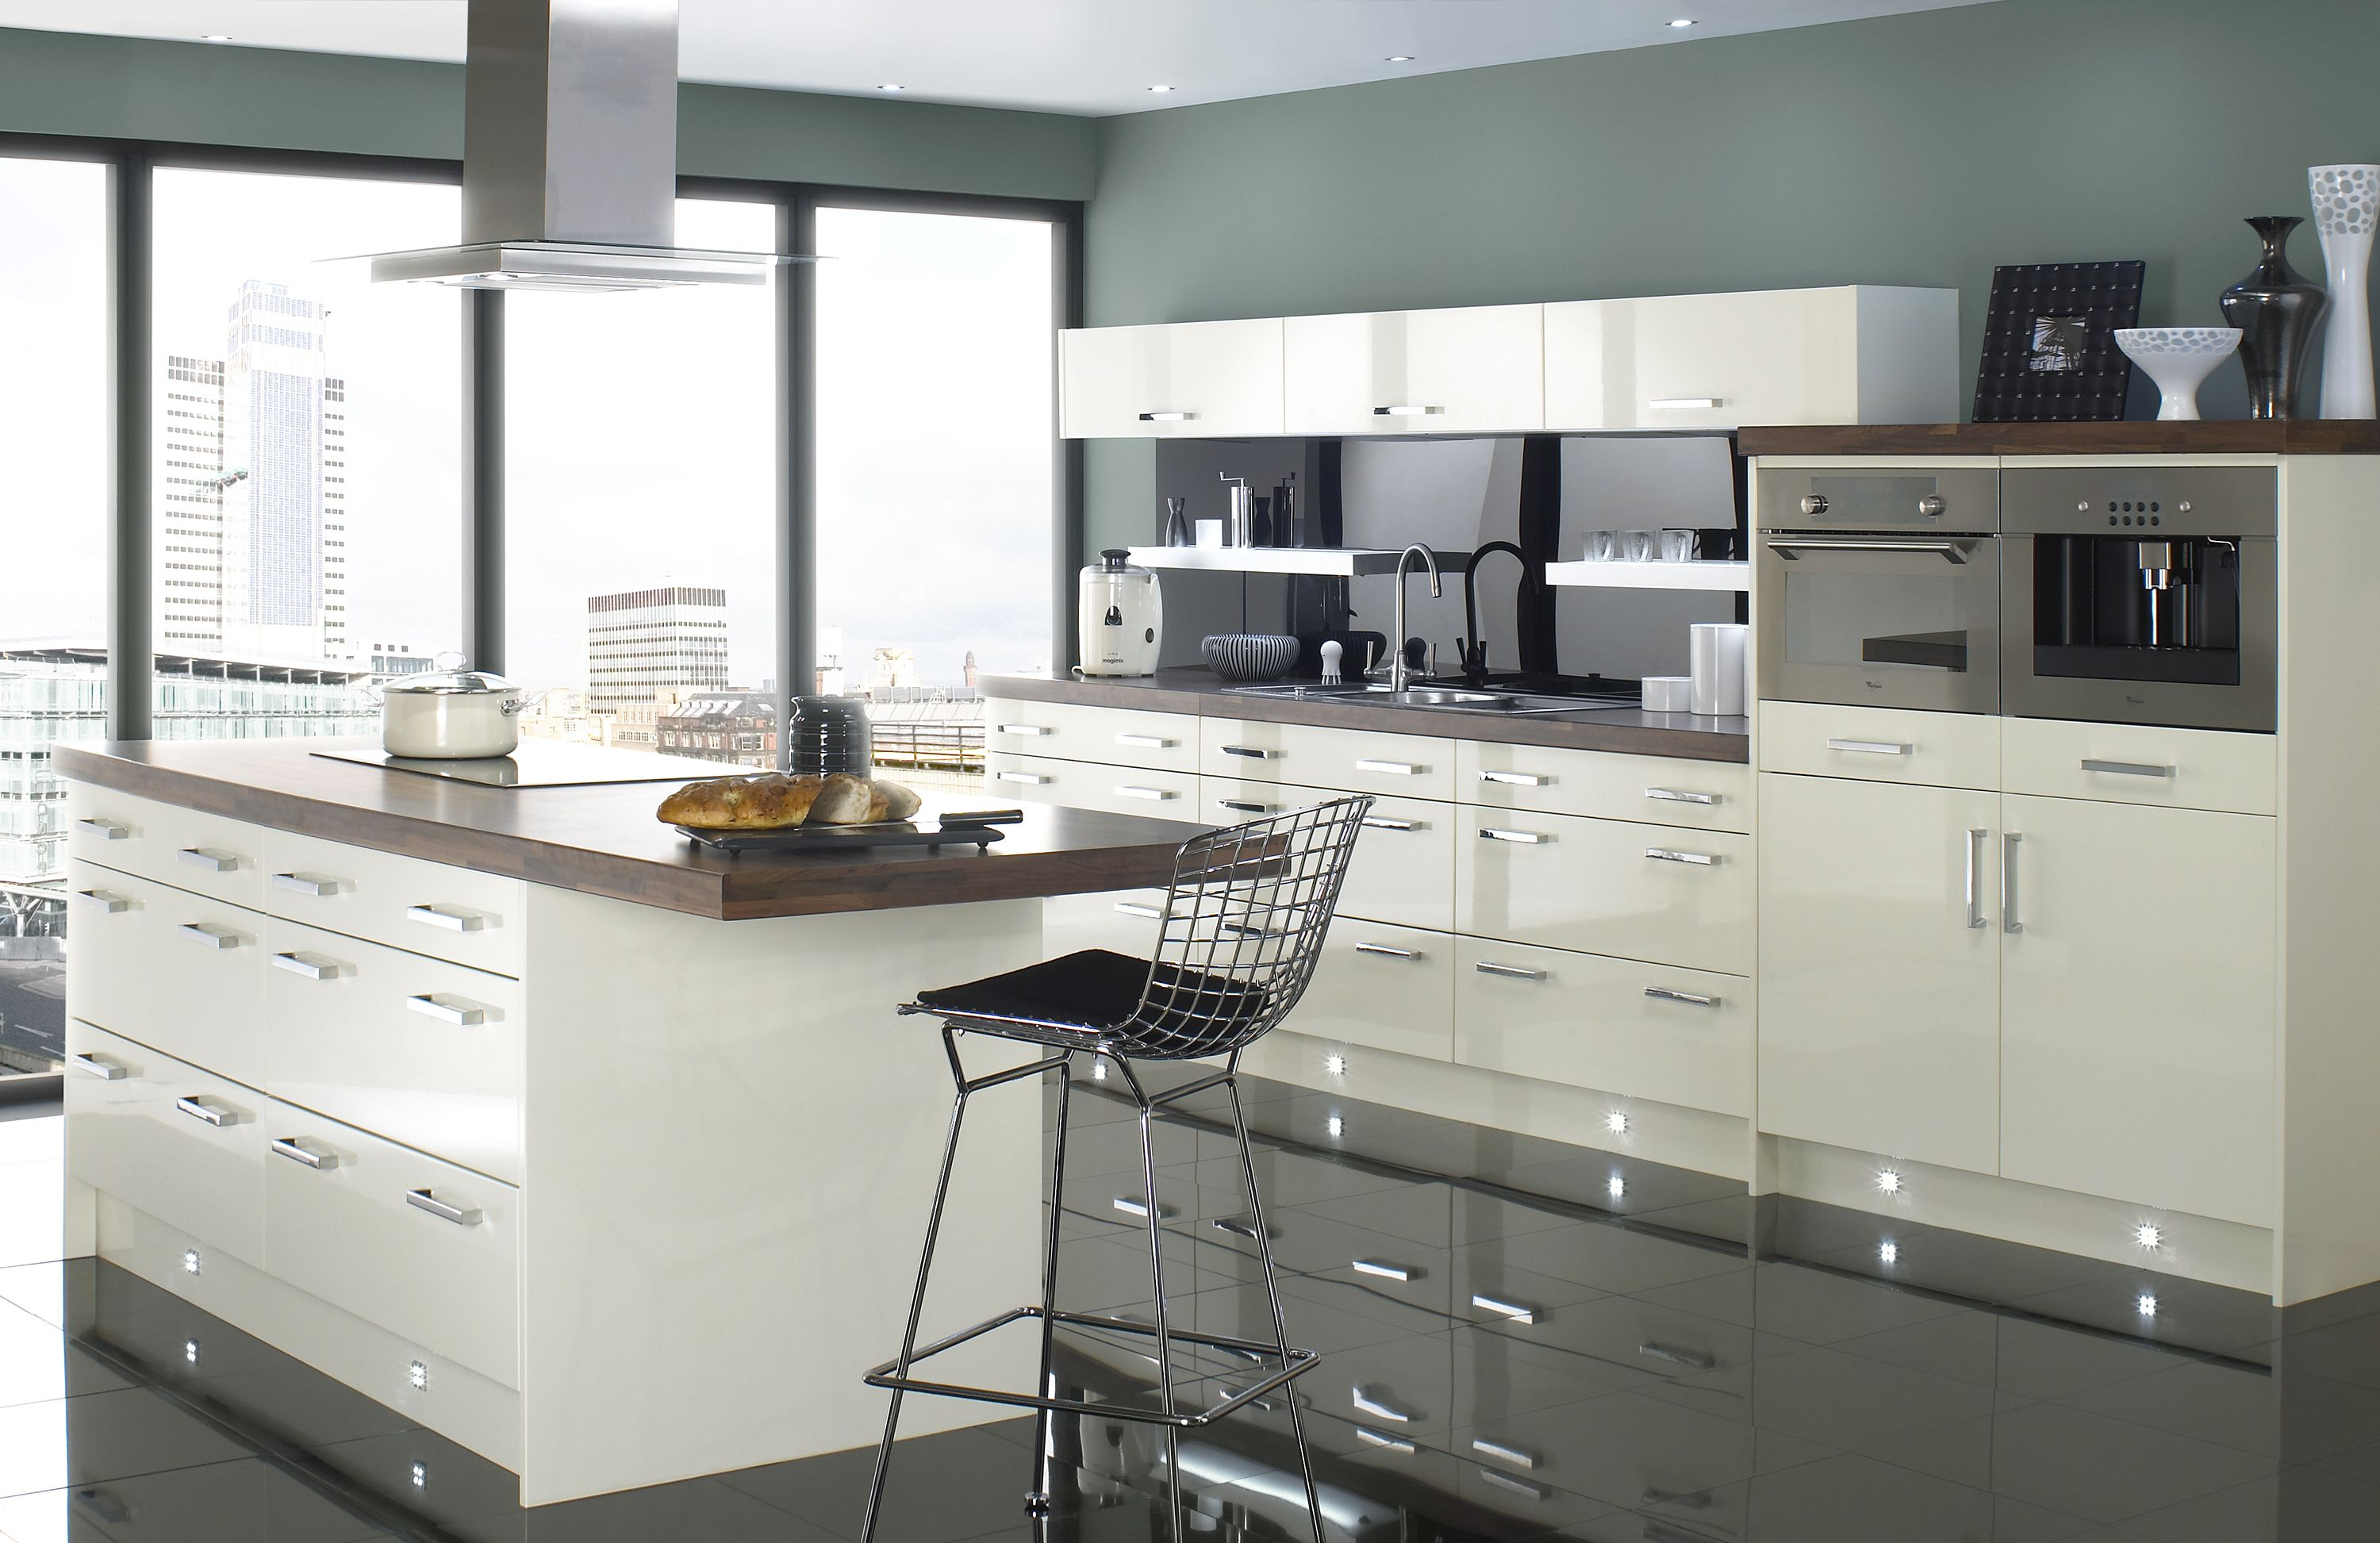 Luxury ivory gloss kitchen and galley style central island, designed ...